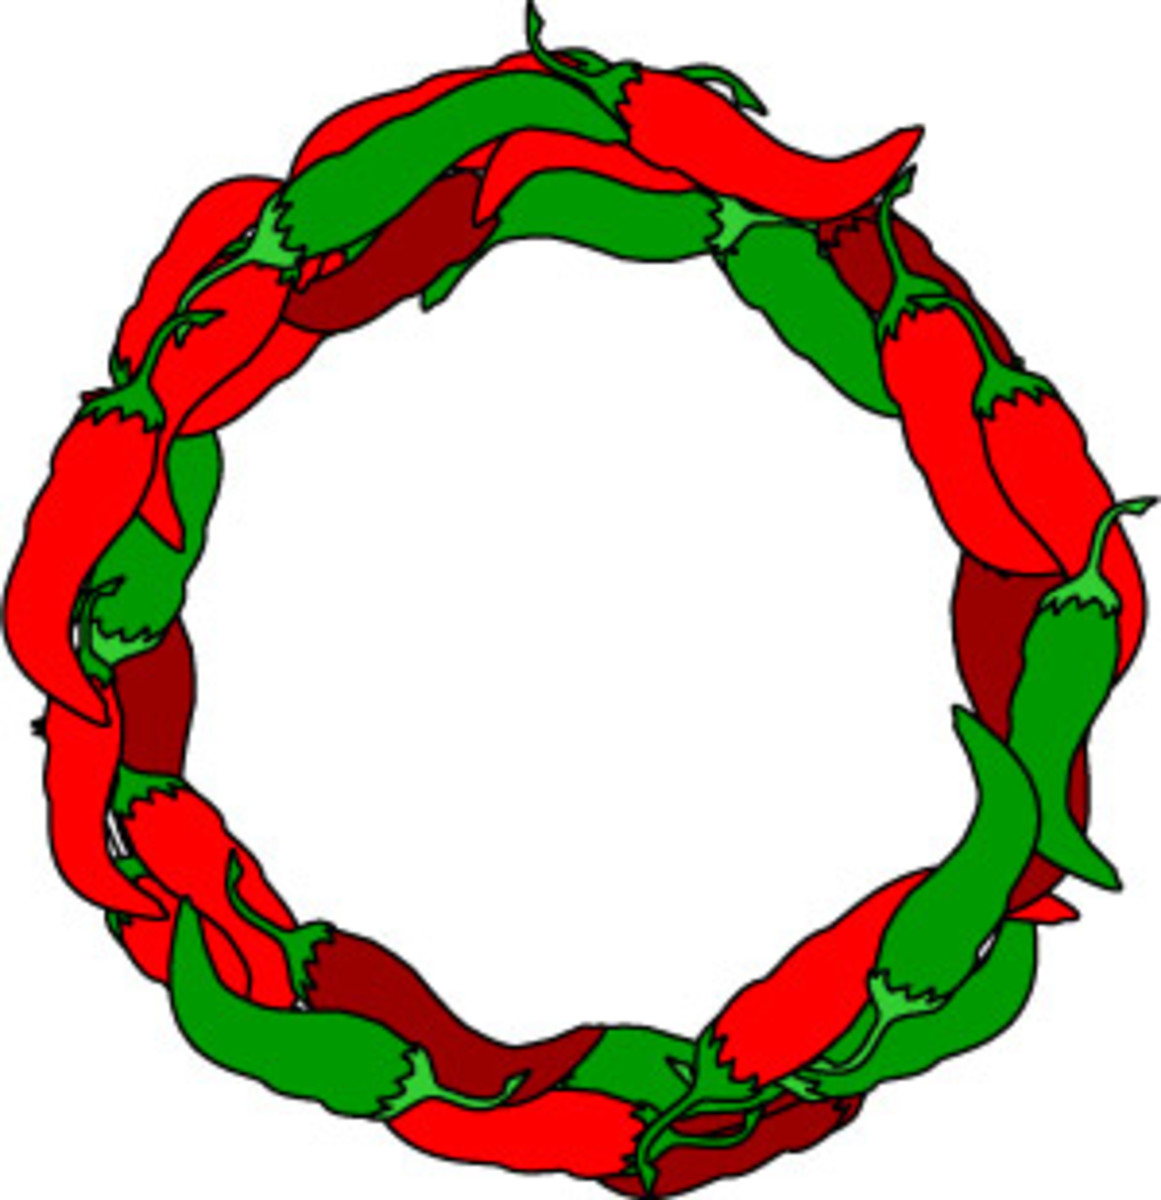 Chili peppers wreath border clip art